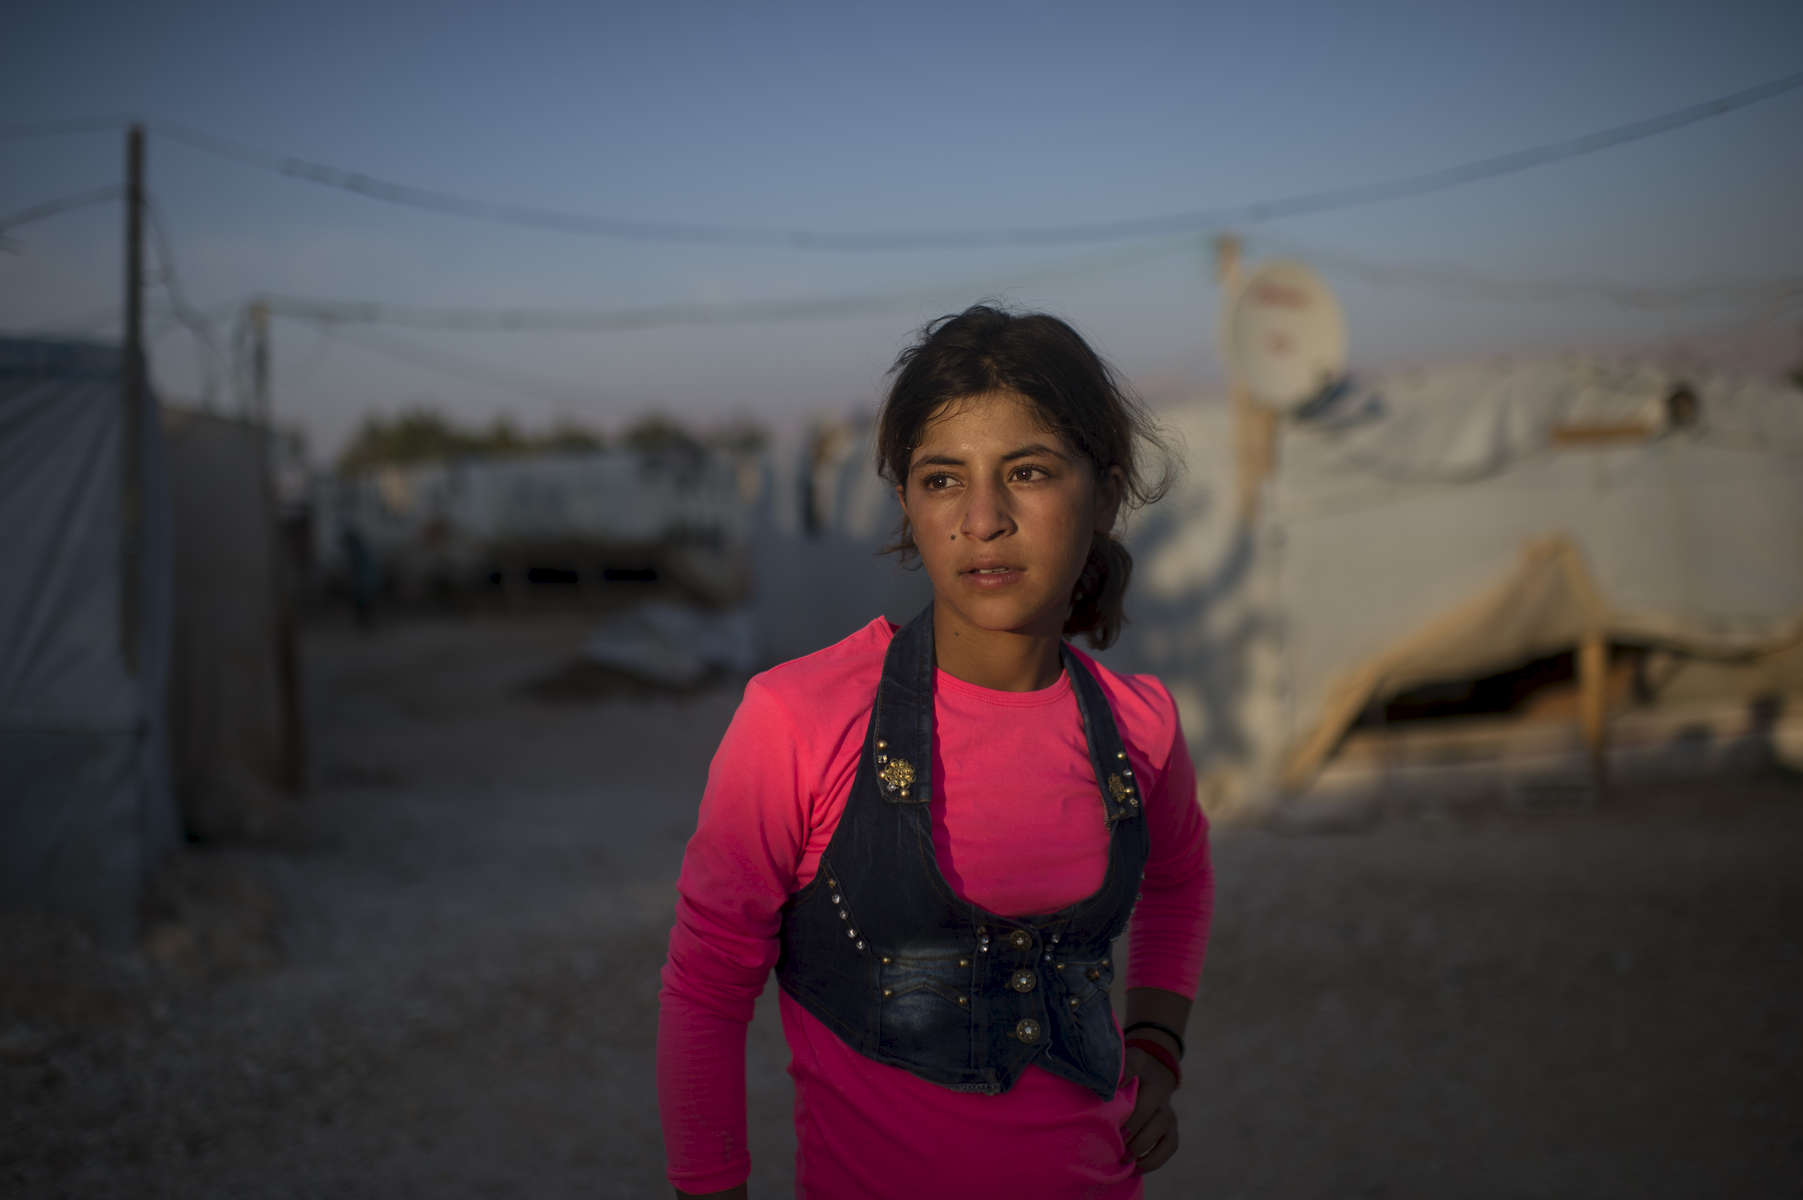 Hanaa Abdullah, 12, poses for a portrait in the informal tented settlement she lives in with her family and other Syrian refugees,in the Bekaa Valley, between the city of Zahle and Baalbak, in Lebanon, August 1, 2015.  Hanaa and her family fled Syria in 2011 at the beginning of the Syrian civil war, and moved to this settlement two years ago, along with other Syrian refugees from Hasaka and the surrounding areas. Hanaa and other children in the settlement work for up to ten hours a day in agricultural lands owned by Lebanese in the area, and earn the equivalent of $5. per day.